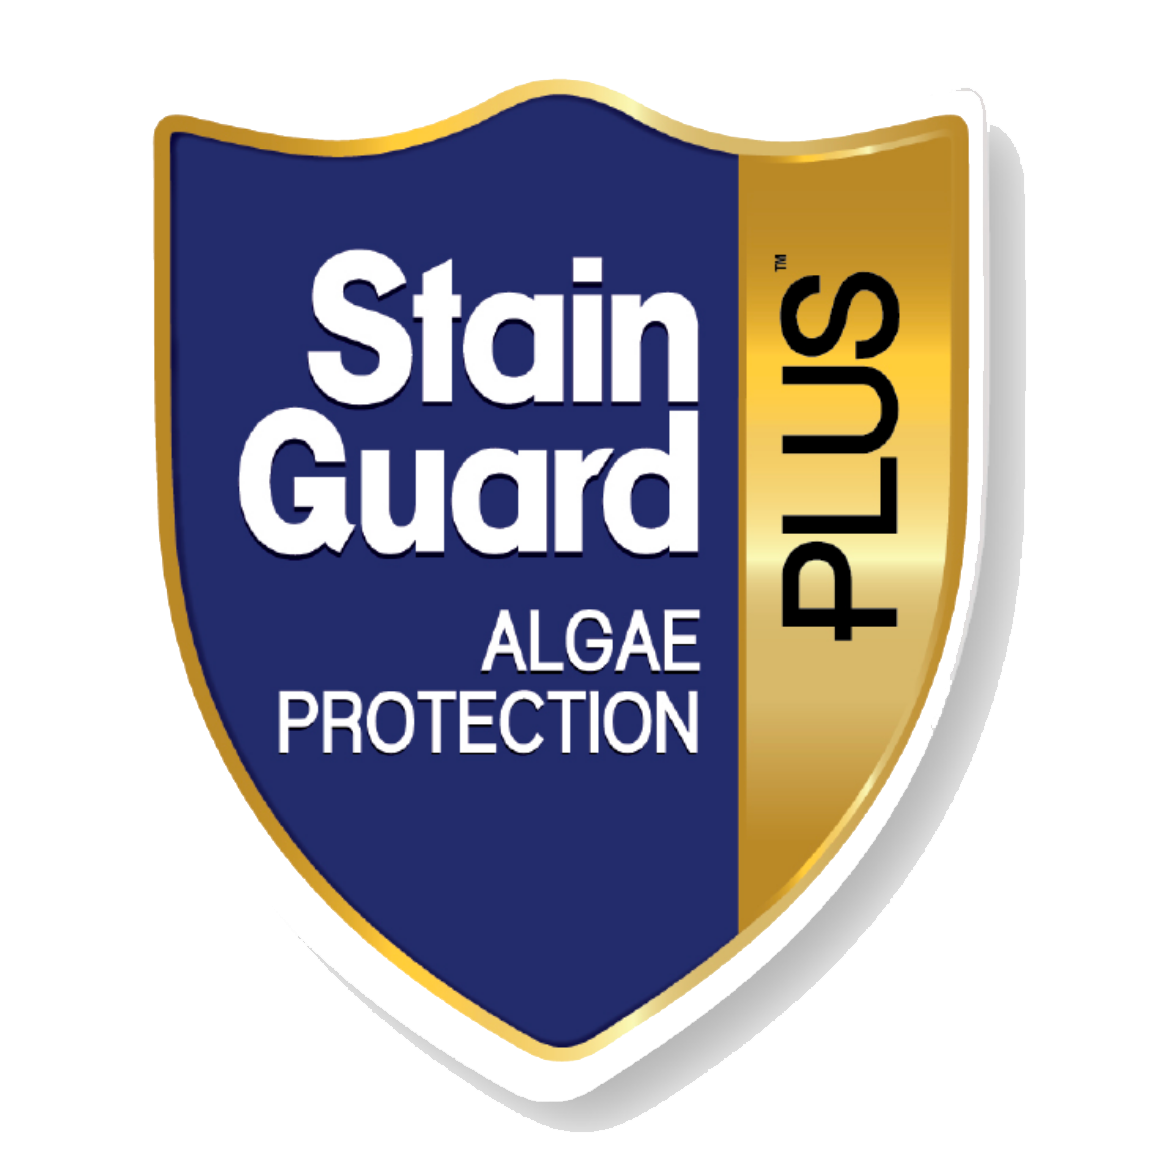 Stain Guard Algae Protection Plus